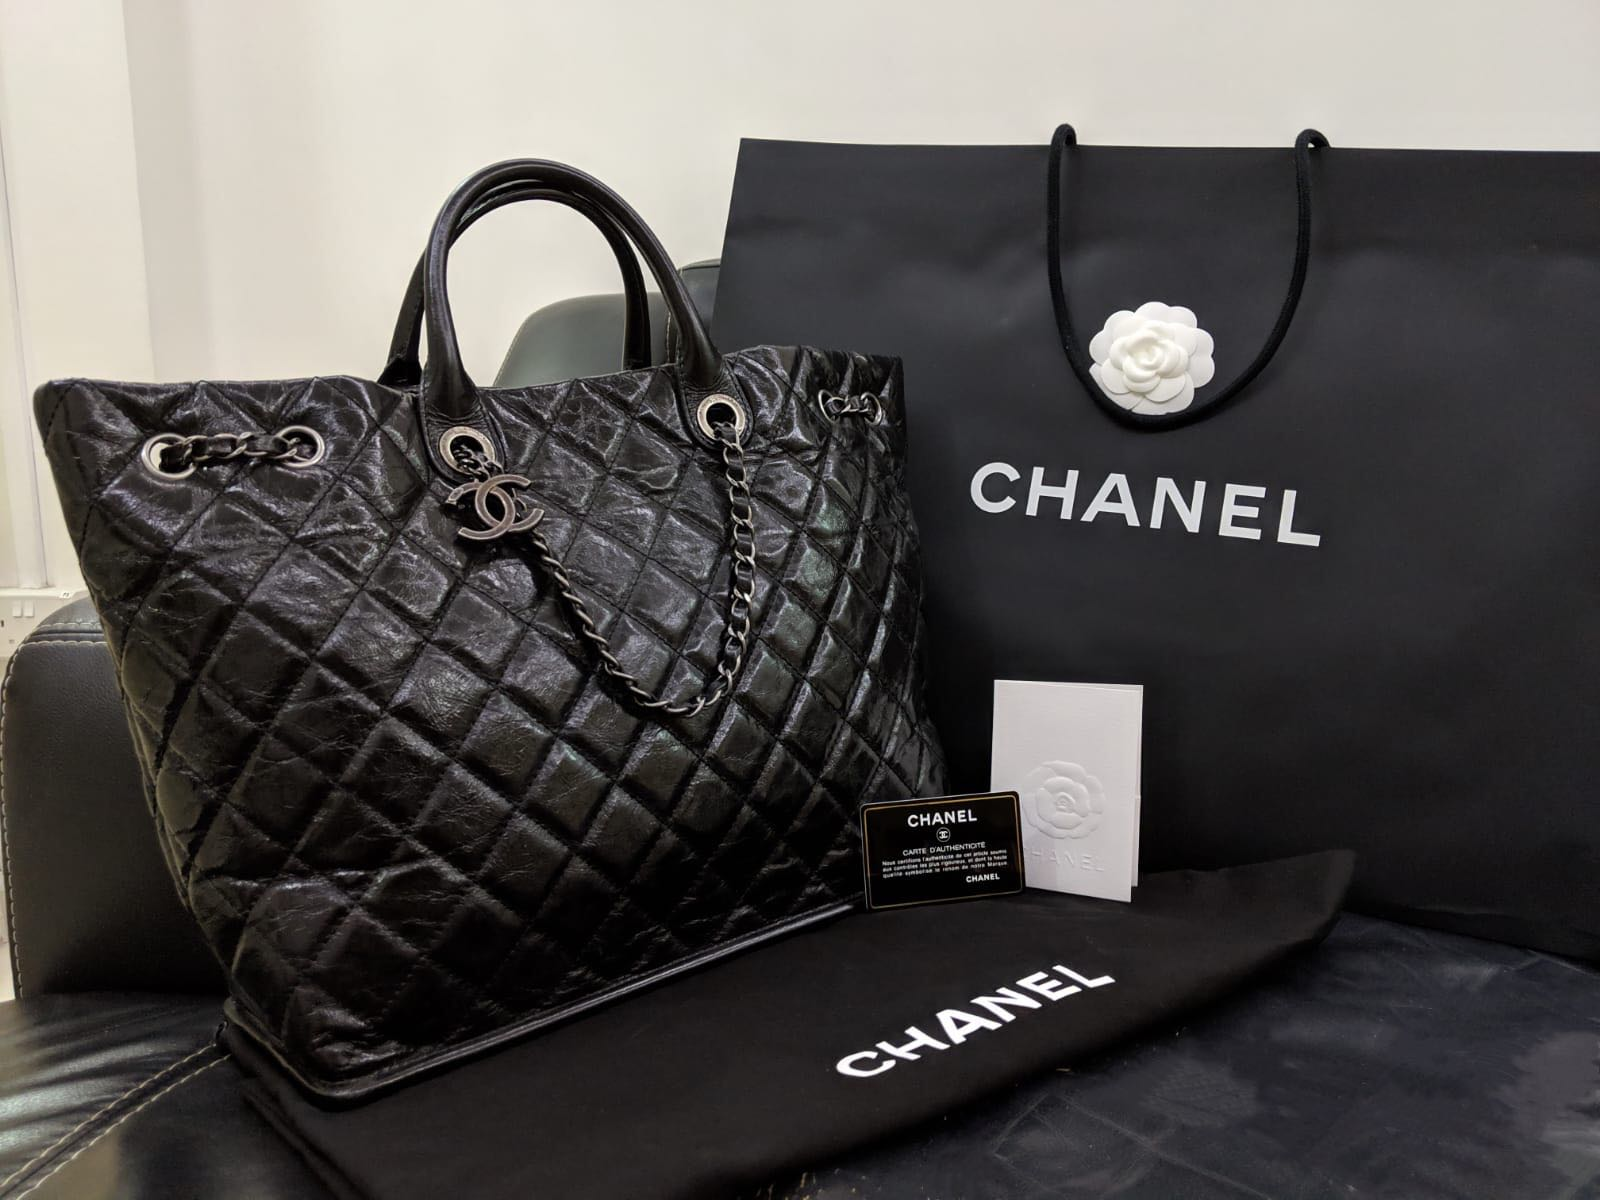 7b6ea48efe26 Authentic Chanel Black Large Rue Cambon Tote Bag, Women's Fashion ...